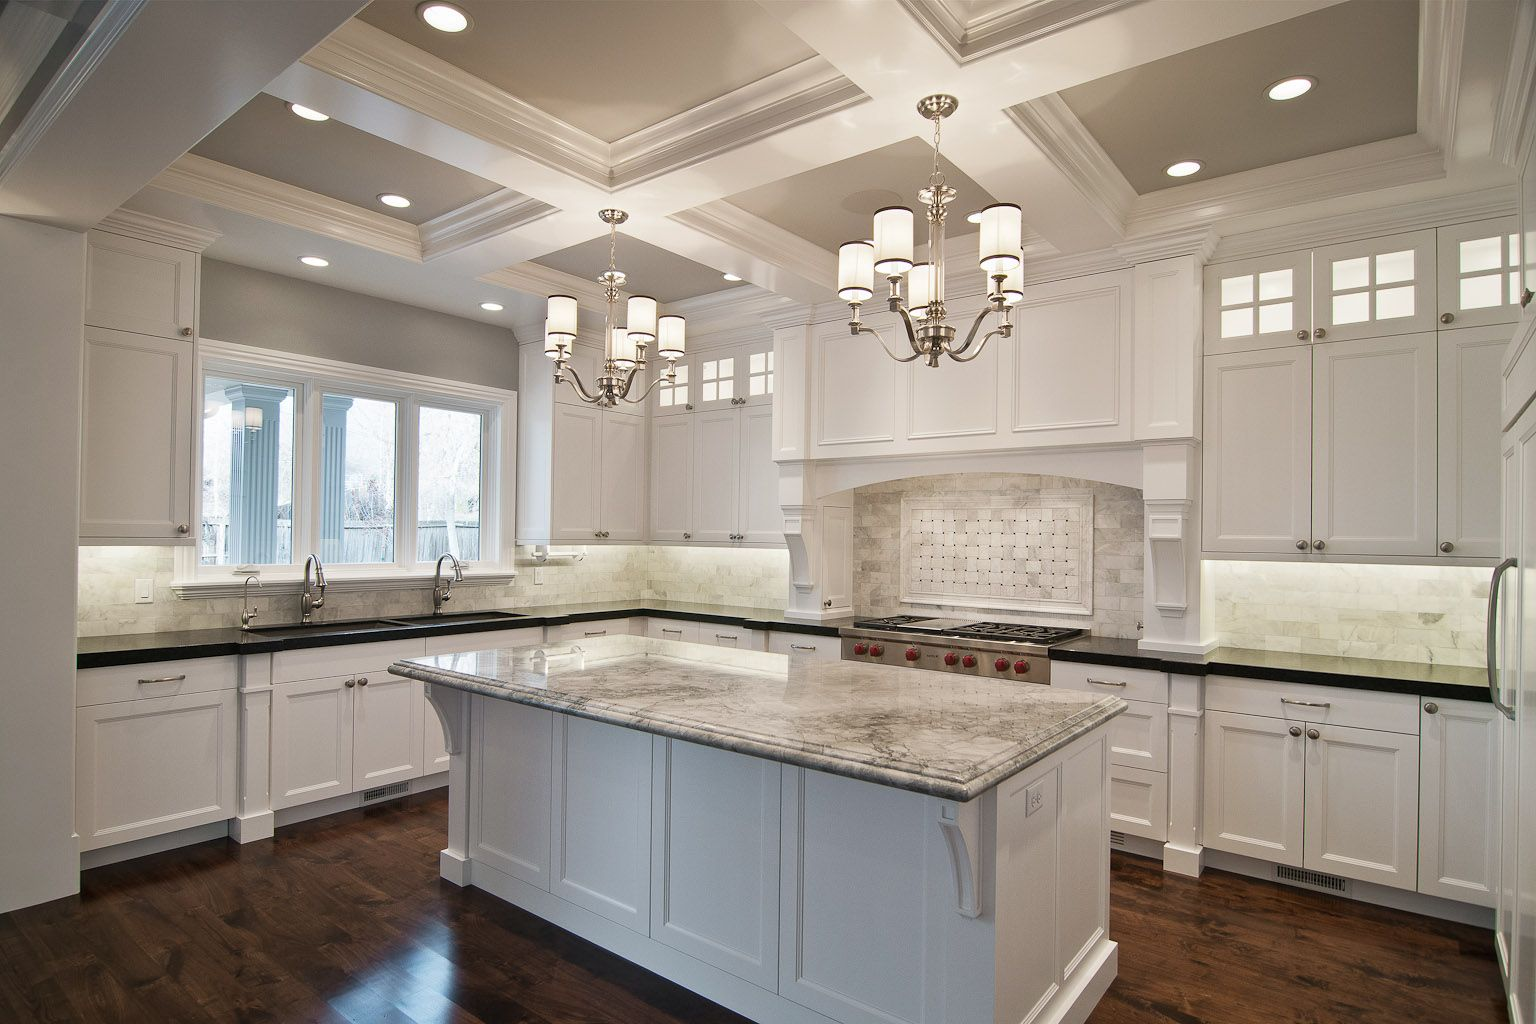 Some day I dream of a kitchen with a middle island and